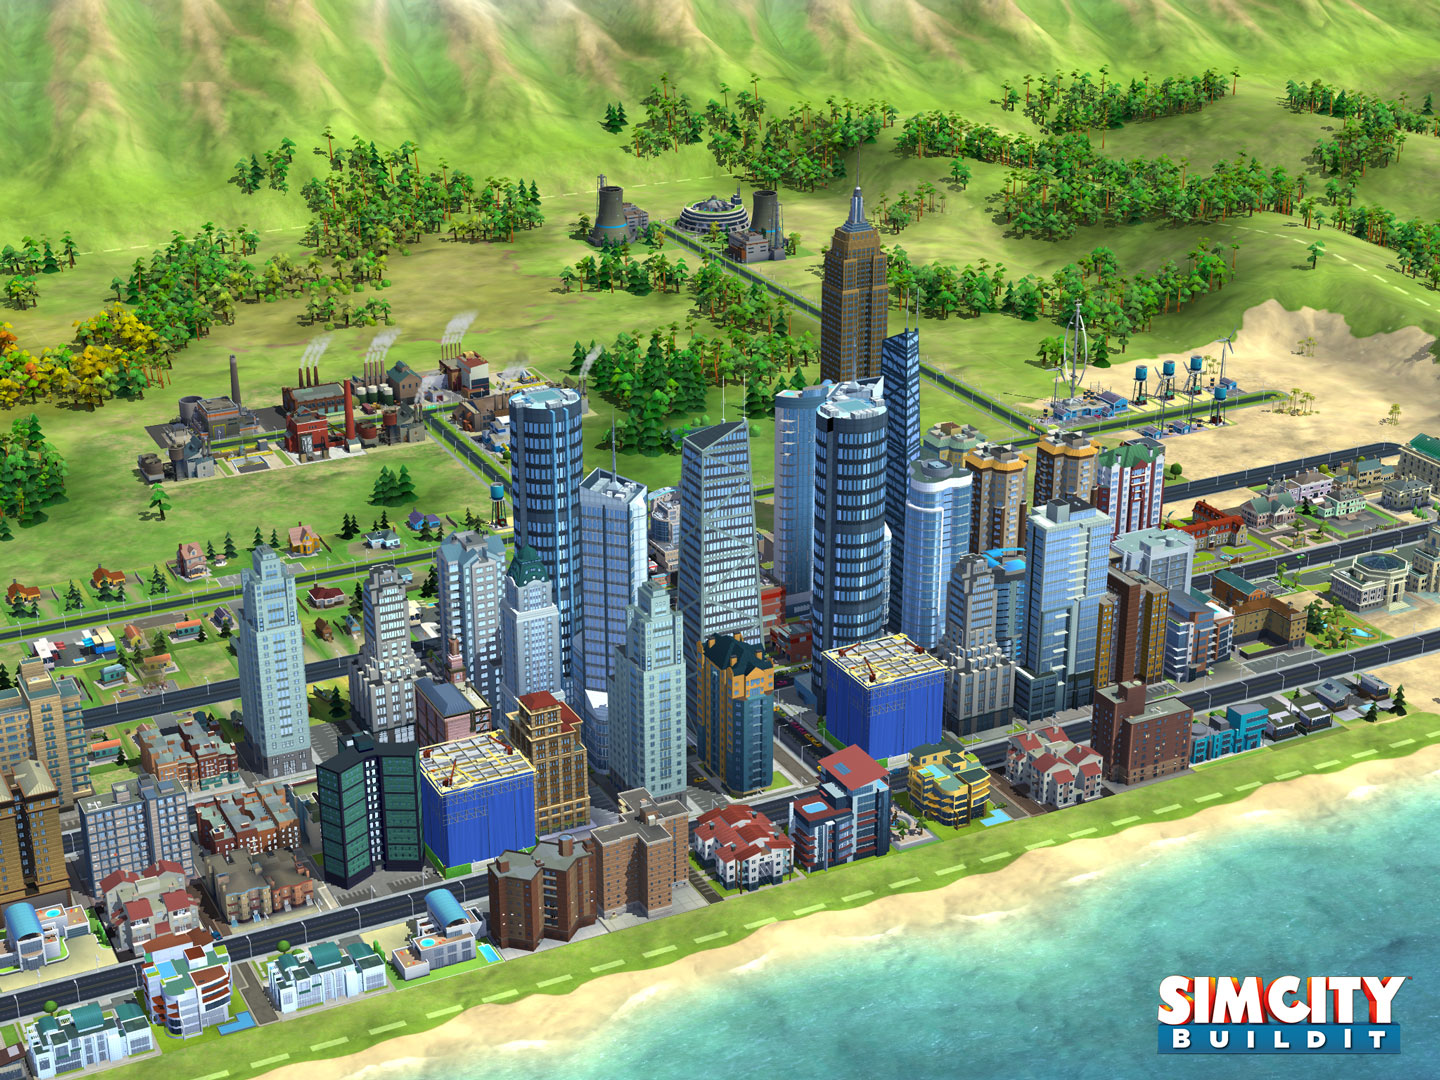 Simcity Build It